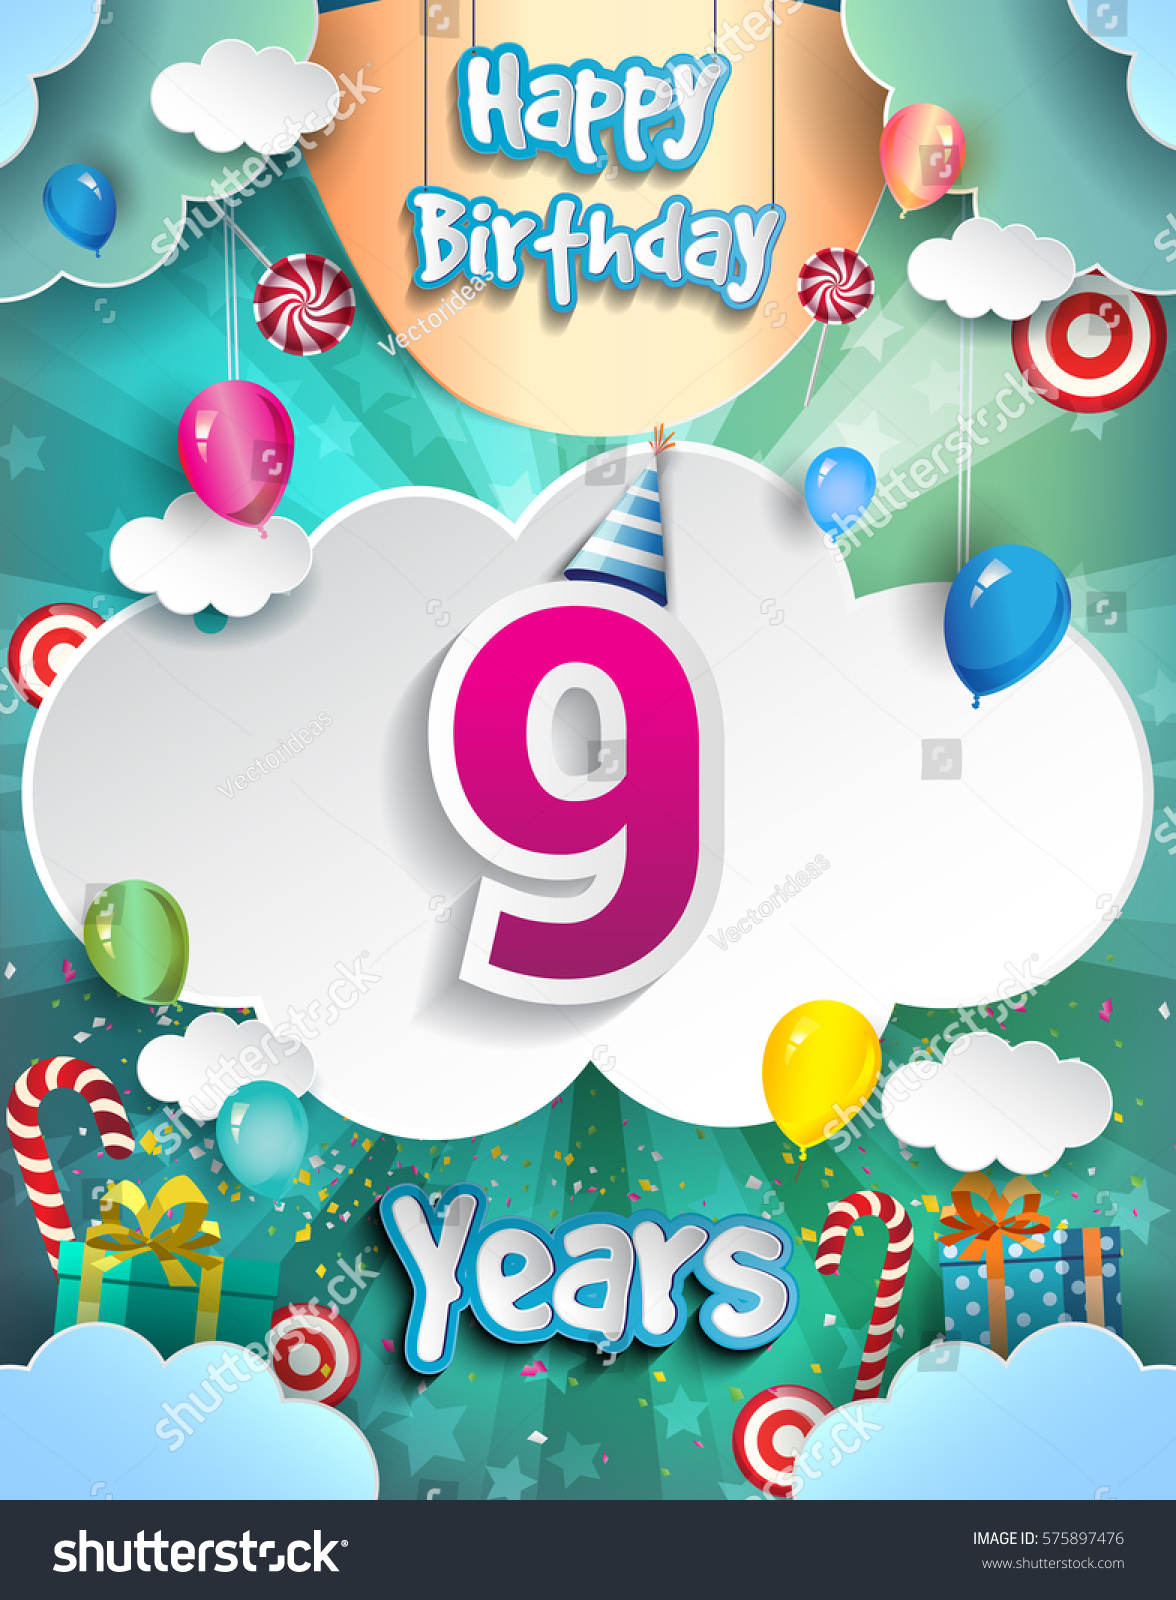 9 Years Birthday Design For Greeting Cards And Poster With Clouds Gift Box